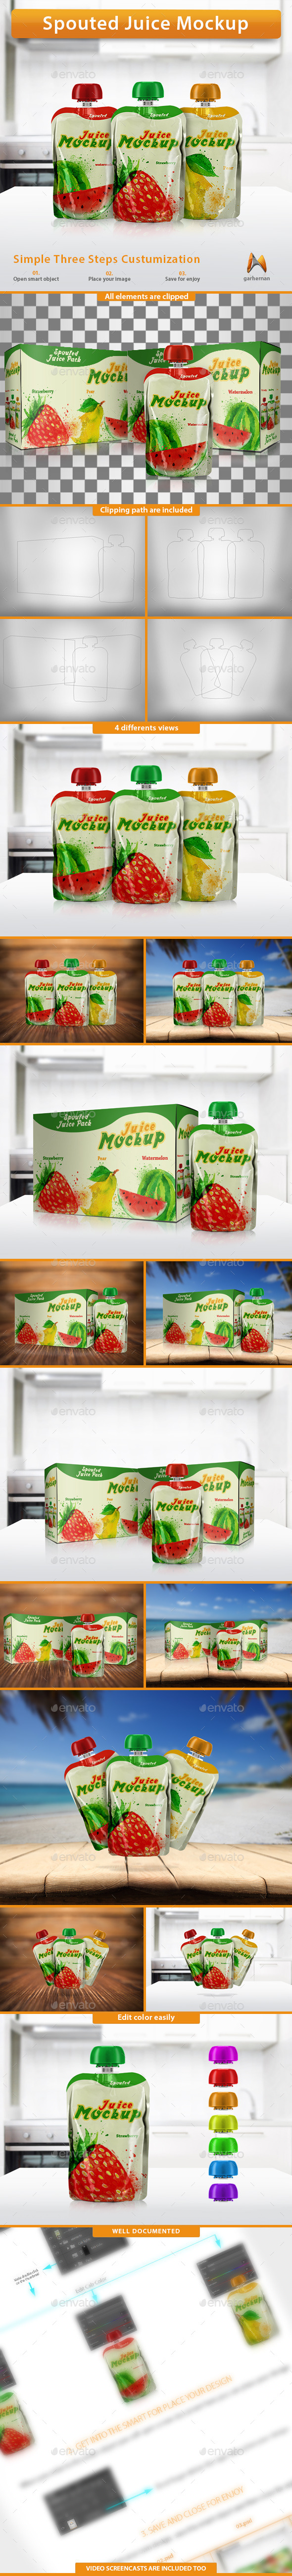 GraphicRiver Spouted Juice Mockup 10685137